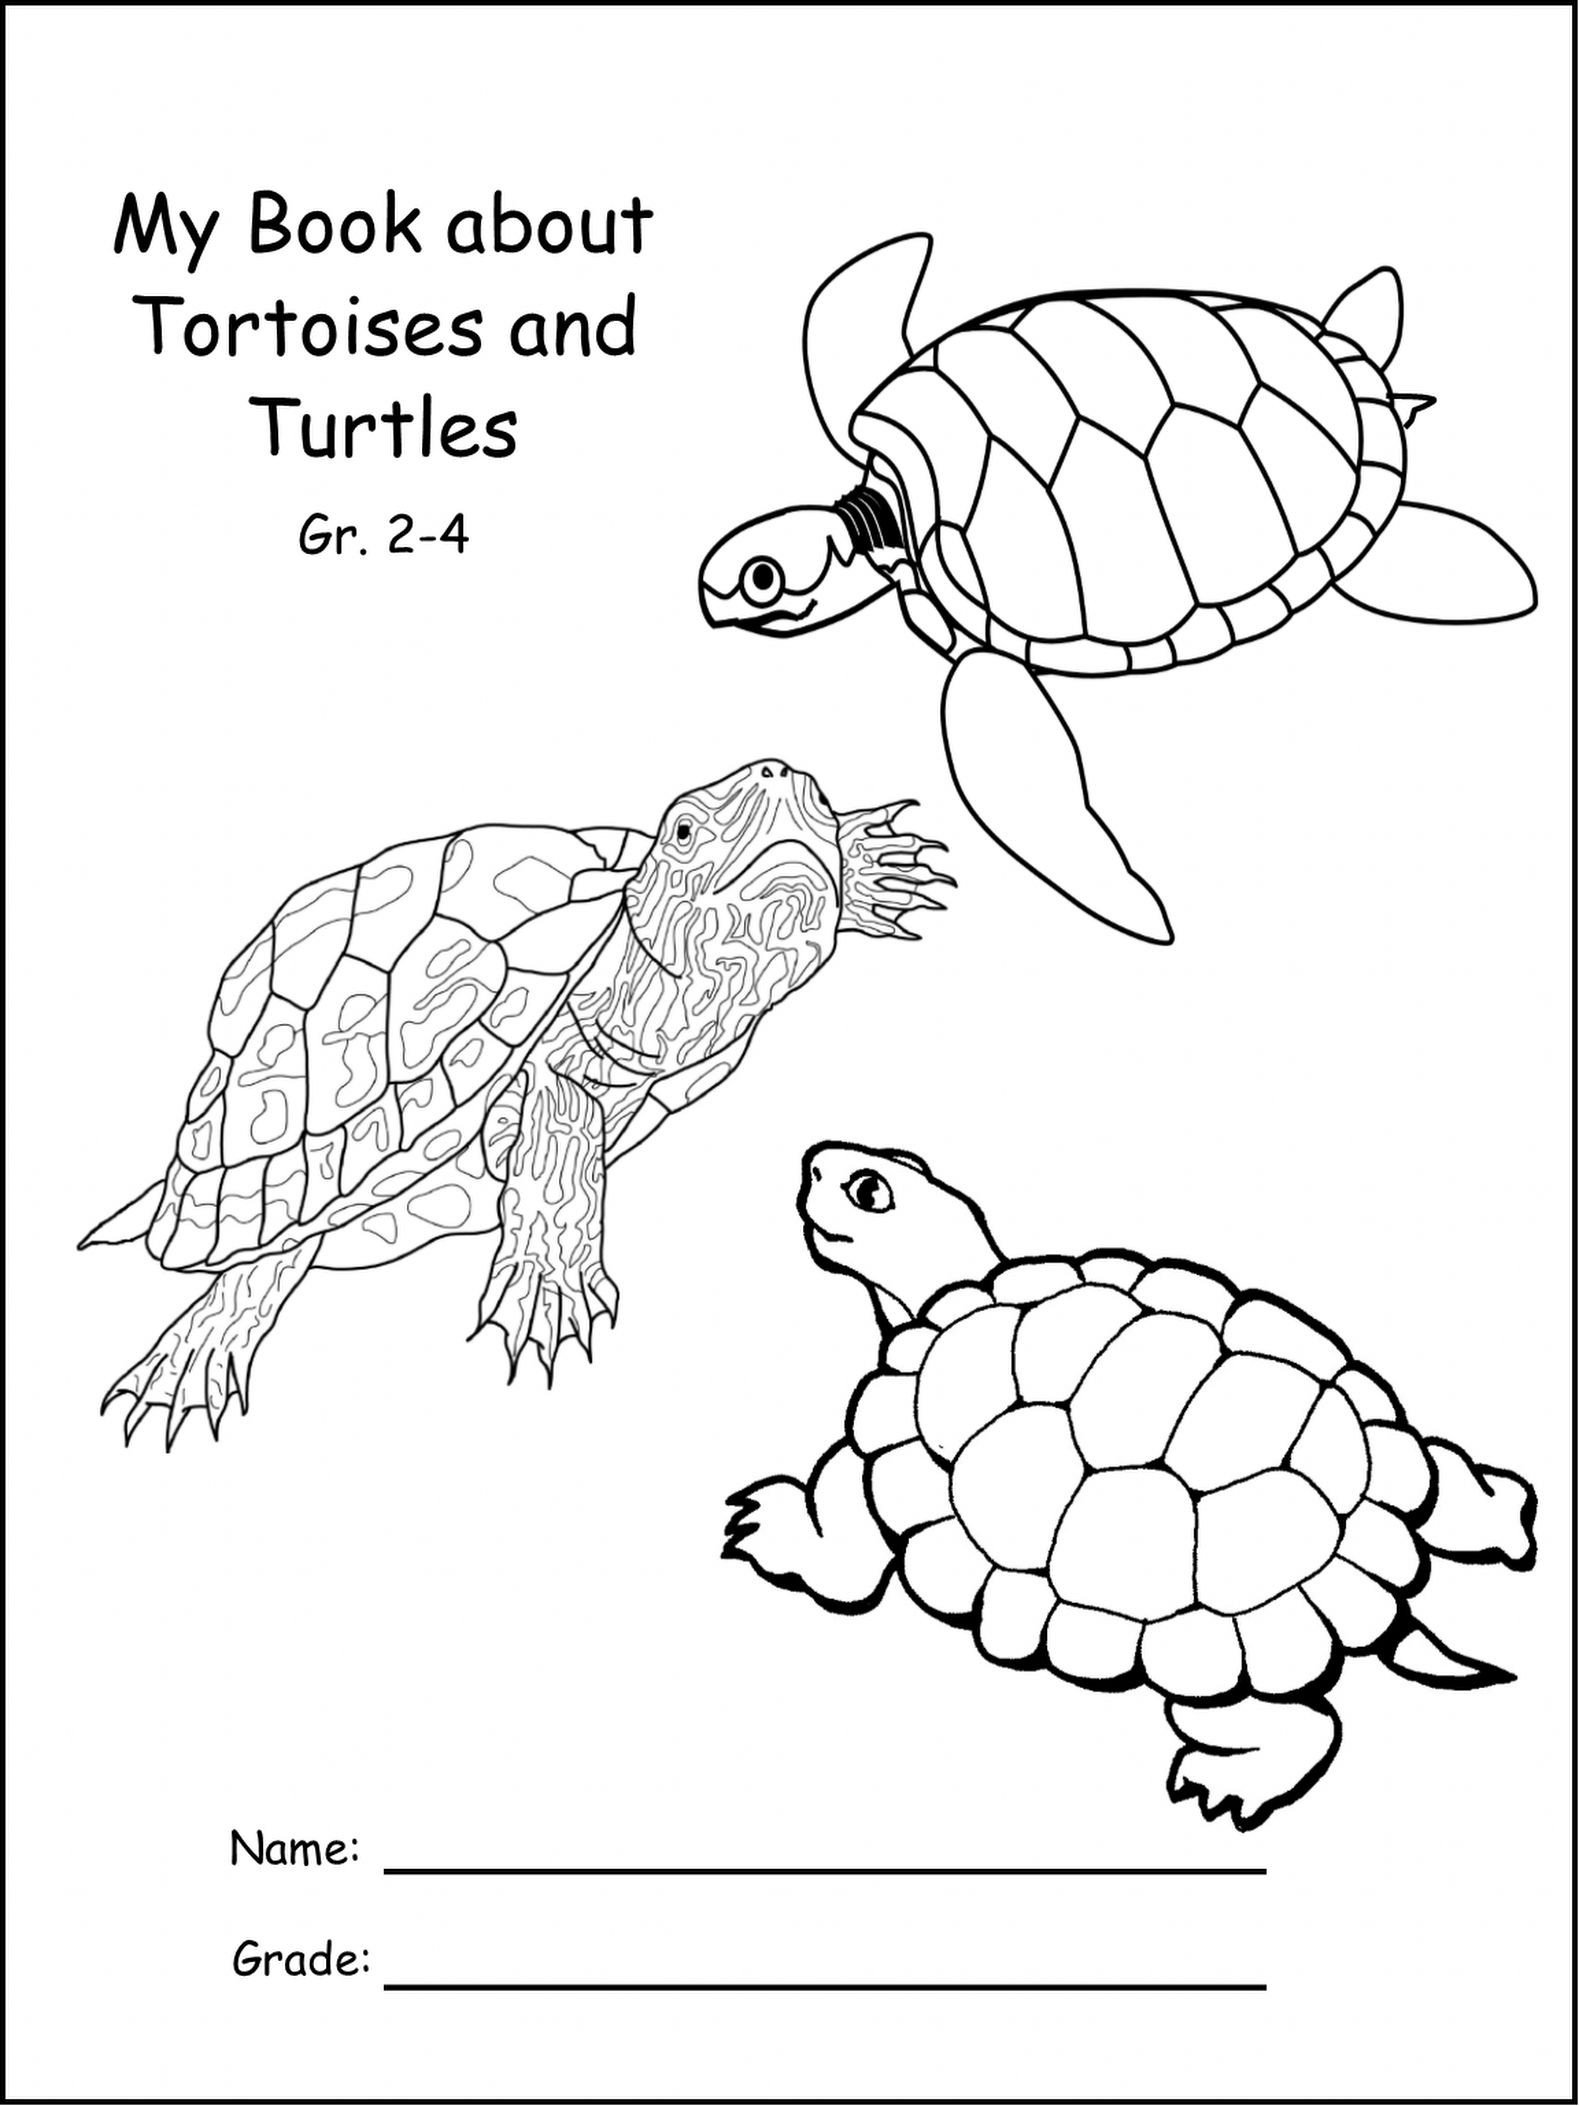 Reptiles Worksheets for Kindergarten Differences Between Sea Turtles and Land tortoises with